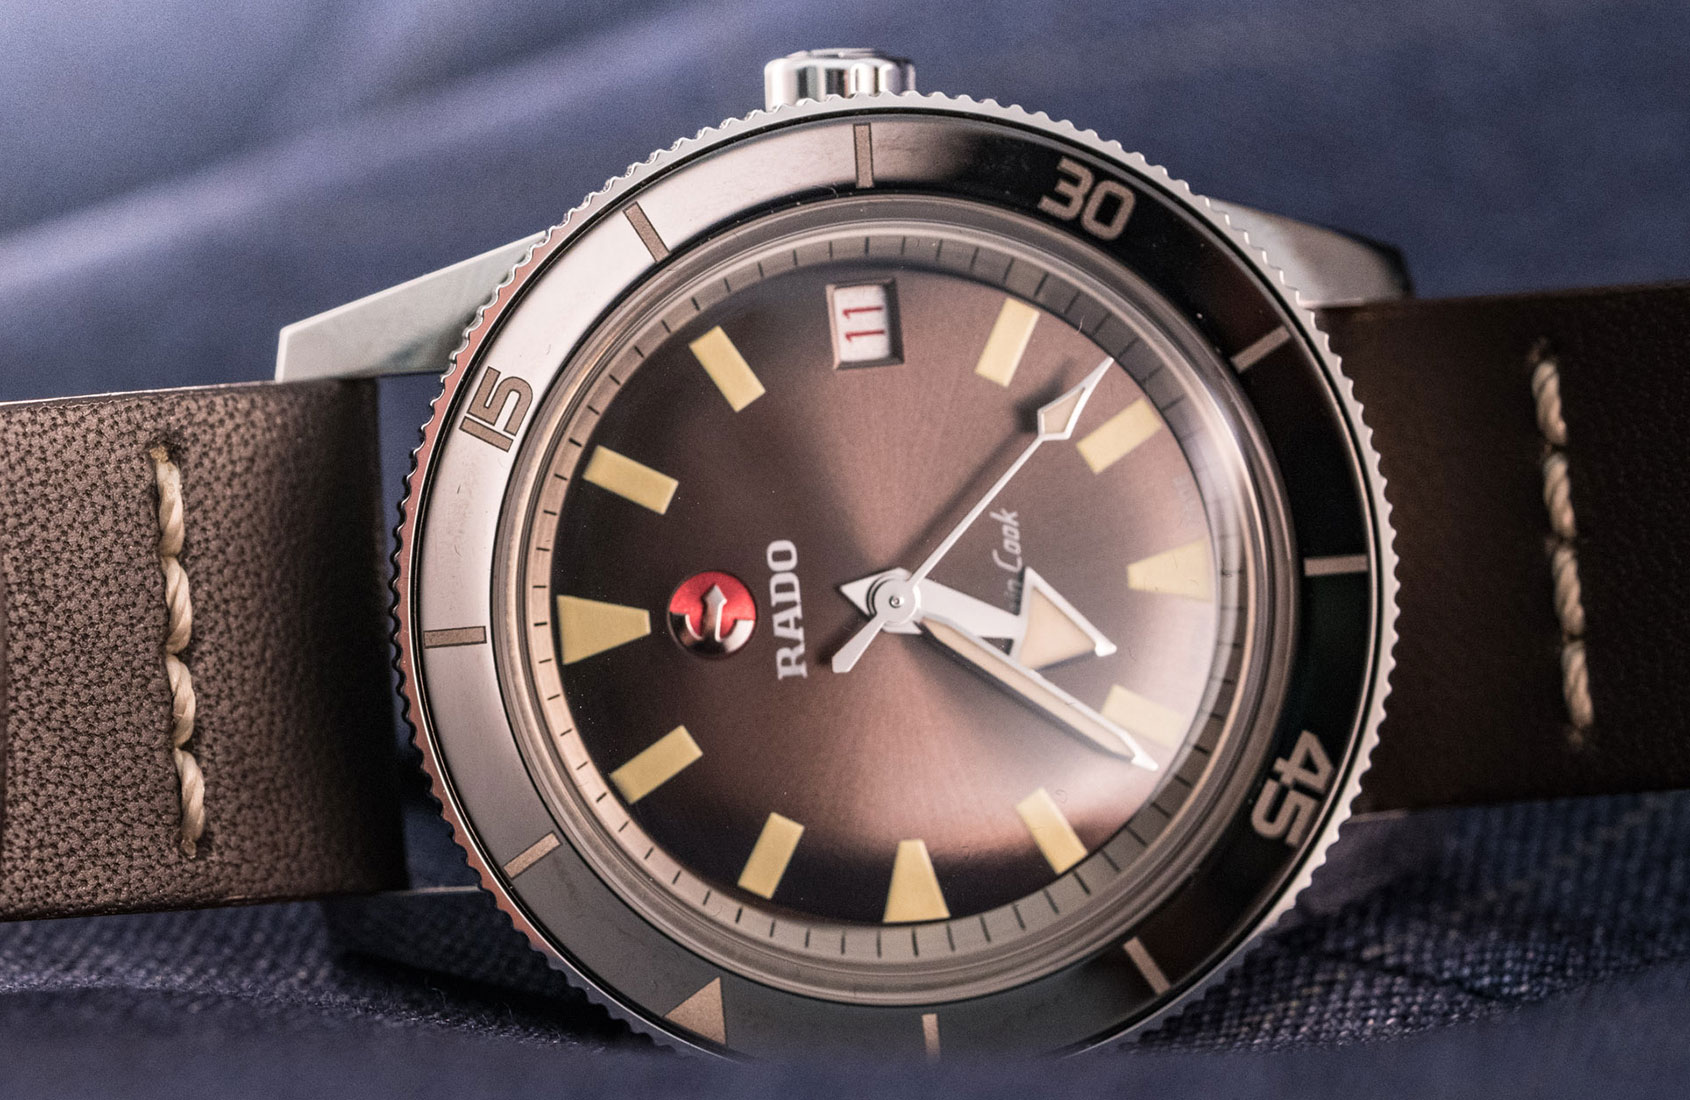 Rado HyperChrome Captain Cook – Hands-on Review